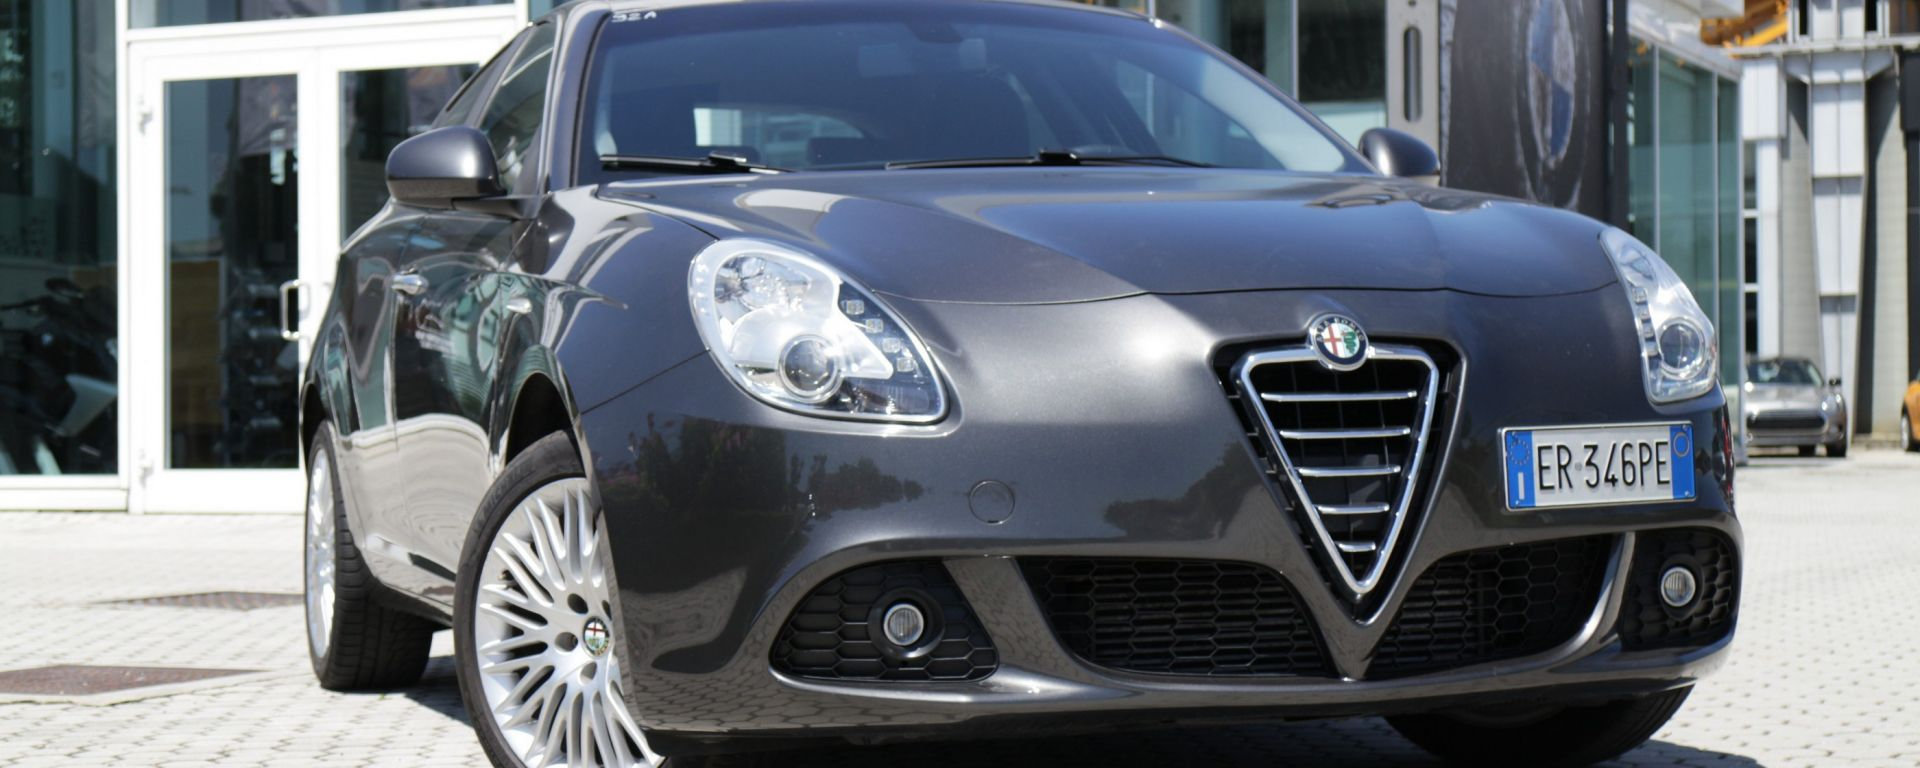 Alfa Romeo Giulietta 1.6 JTDm: Check-up Usato [Video]